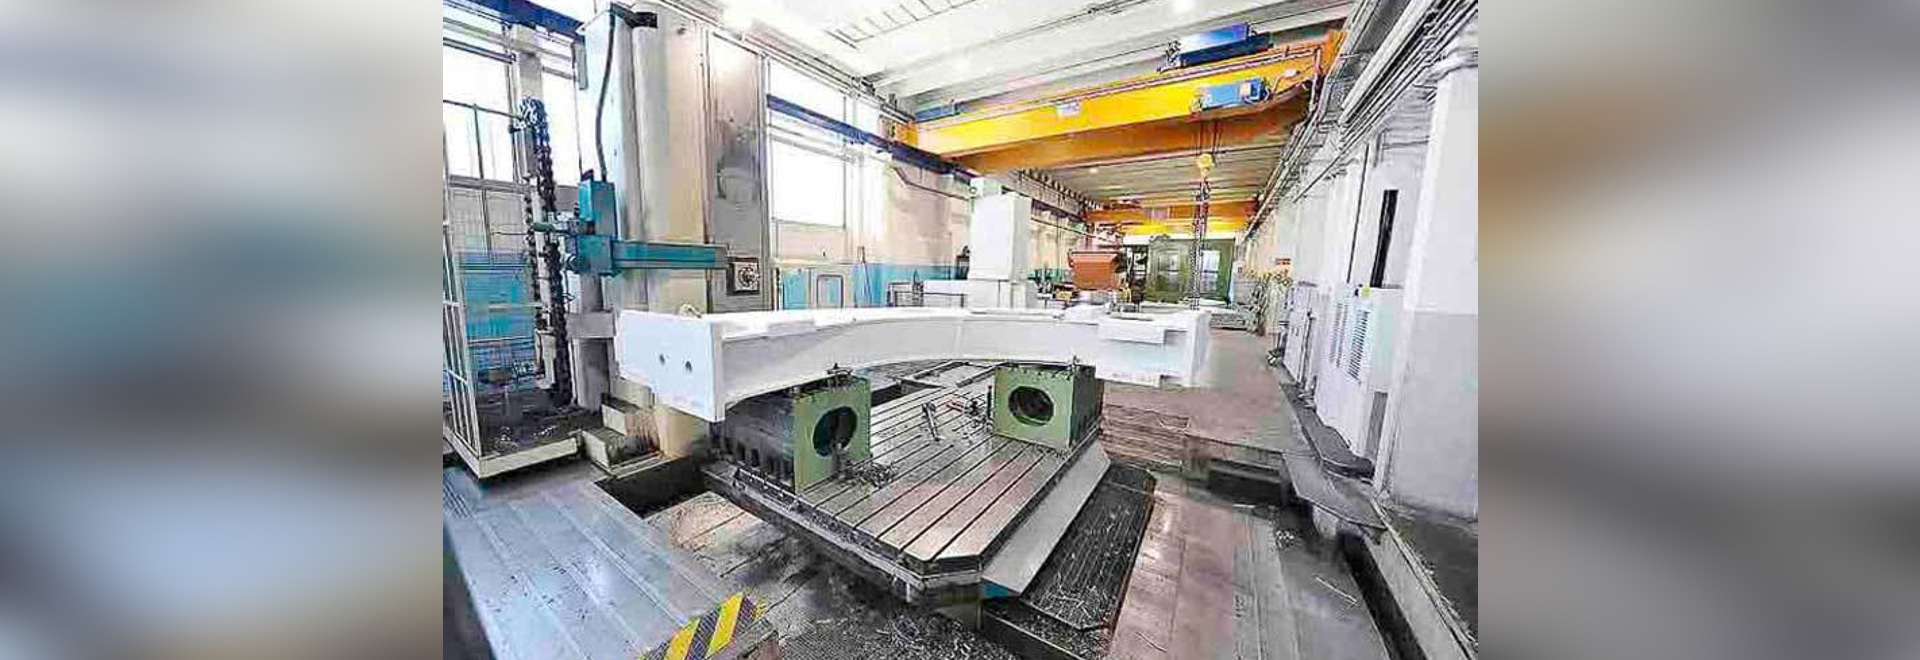 Mechanical machining of erector segments for a TBM (Tunnel Boring Machines)